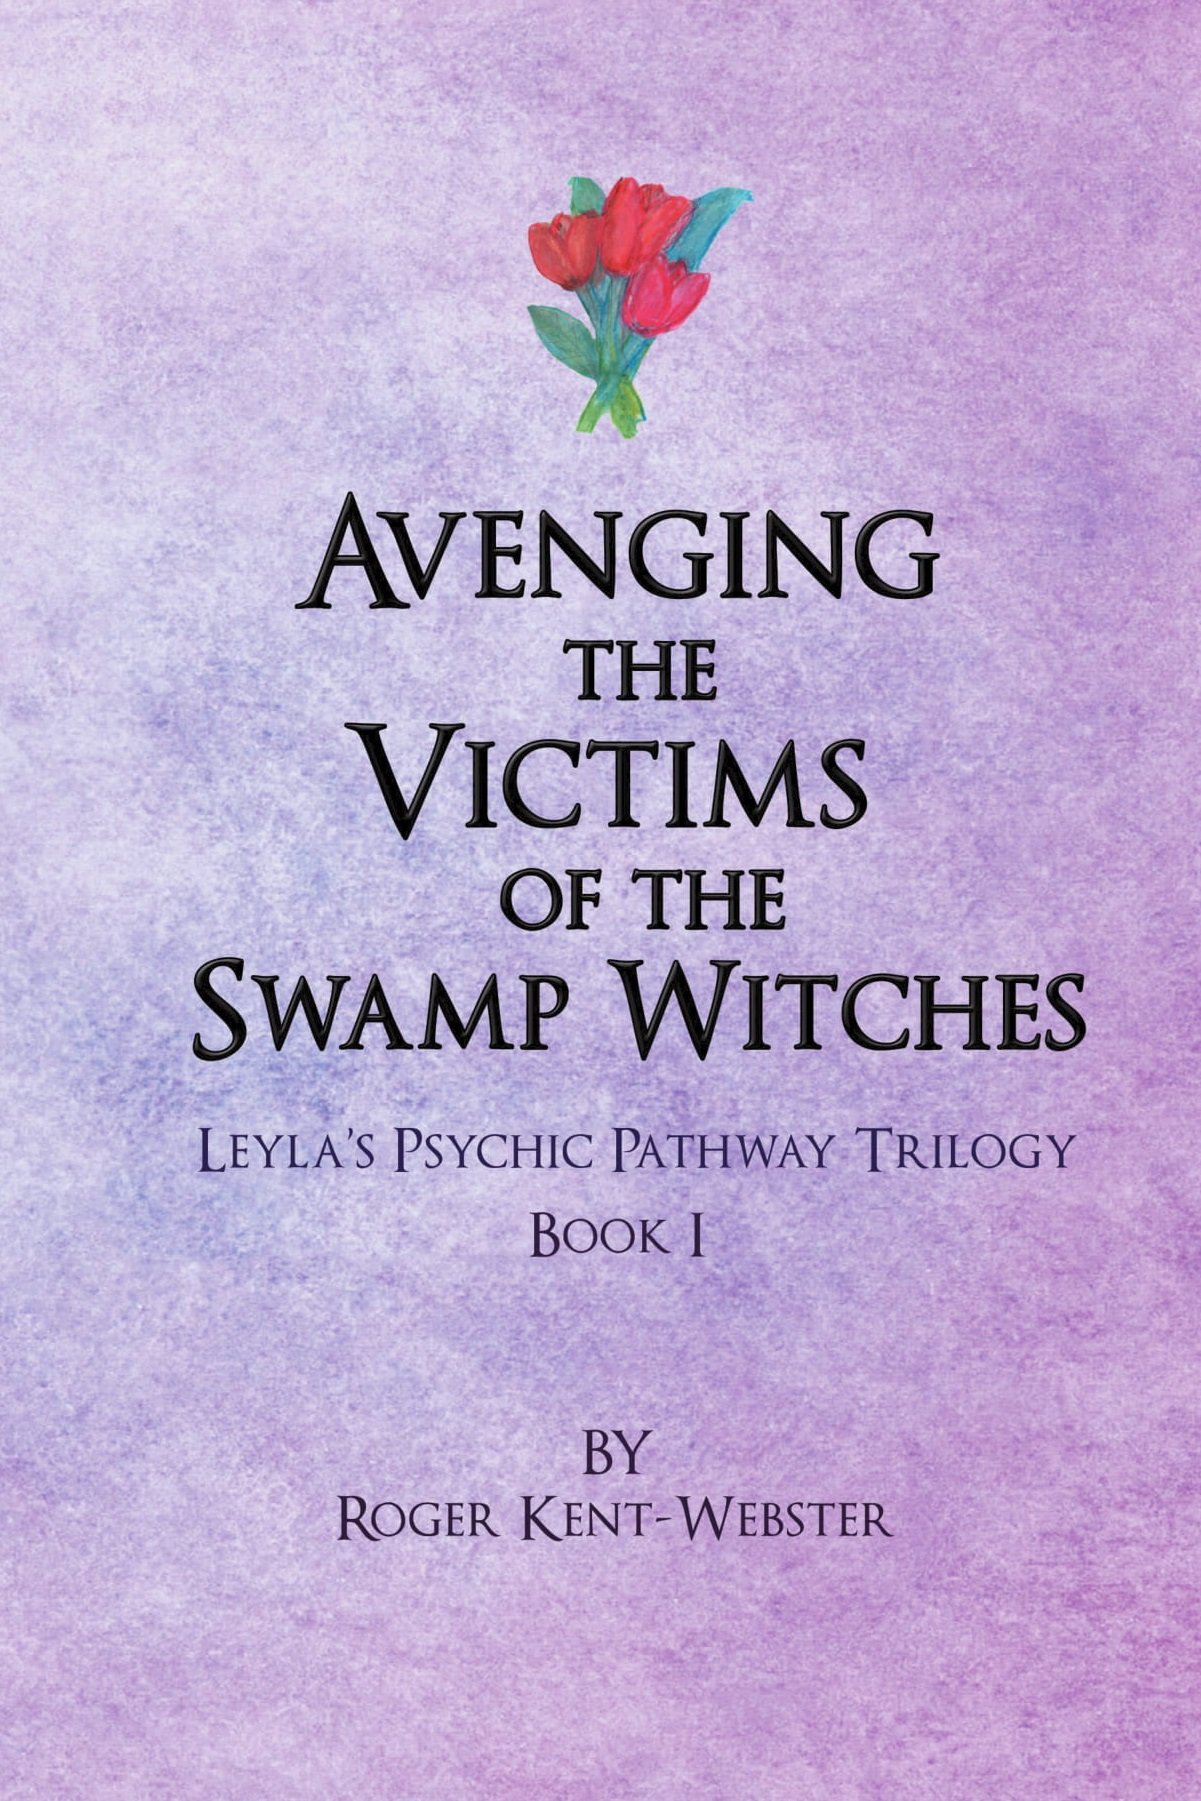 The Victims Of The Swamp Witches